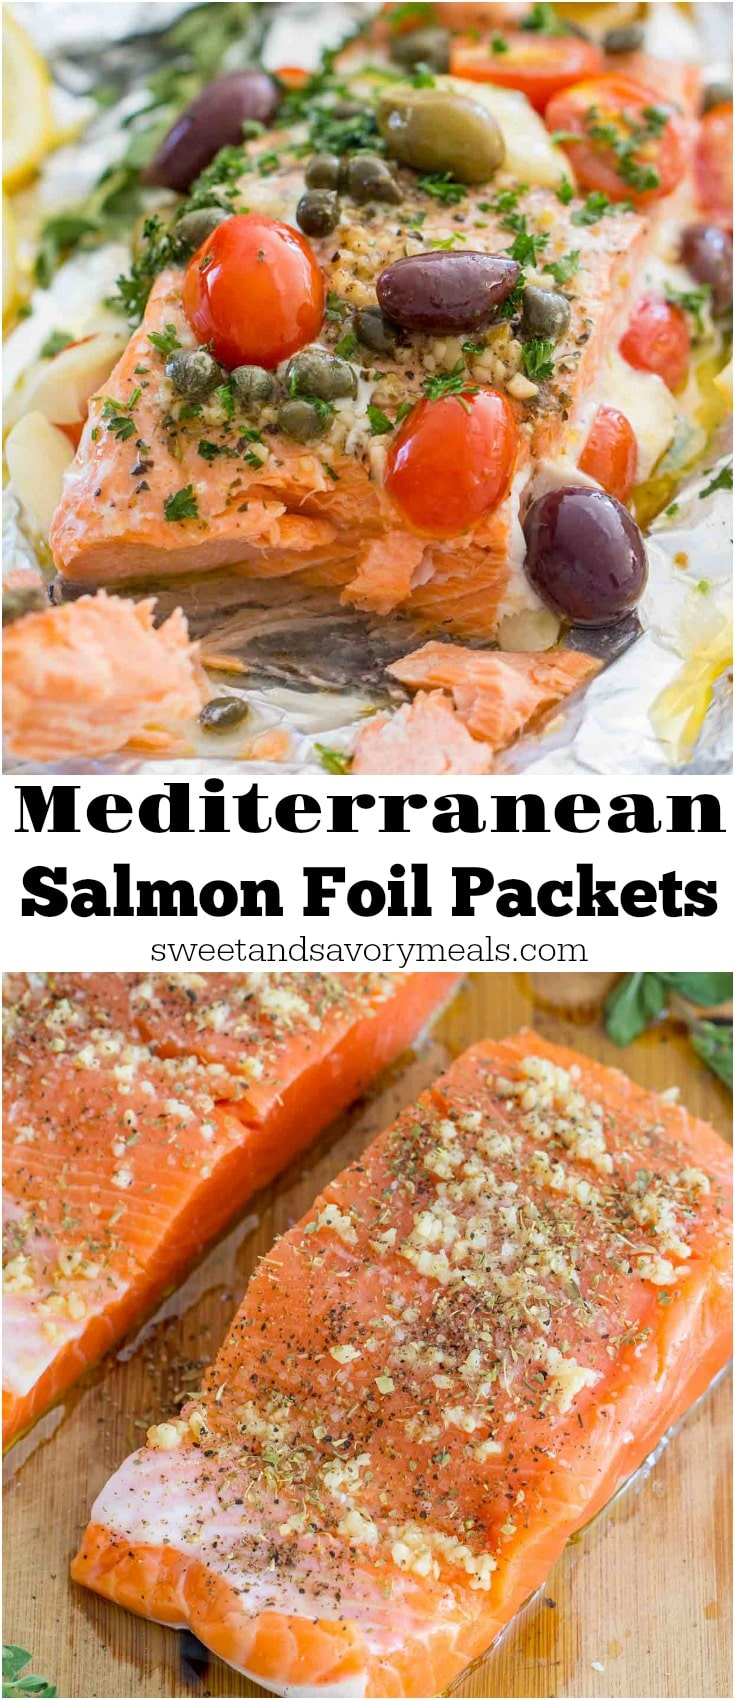 Mediterranean Salmon Foil Packets with capers, olives, oregano, garlic and tomatoes are incredibly flavorful, flaky and tender and ready in just 20 minutes.